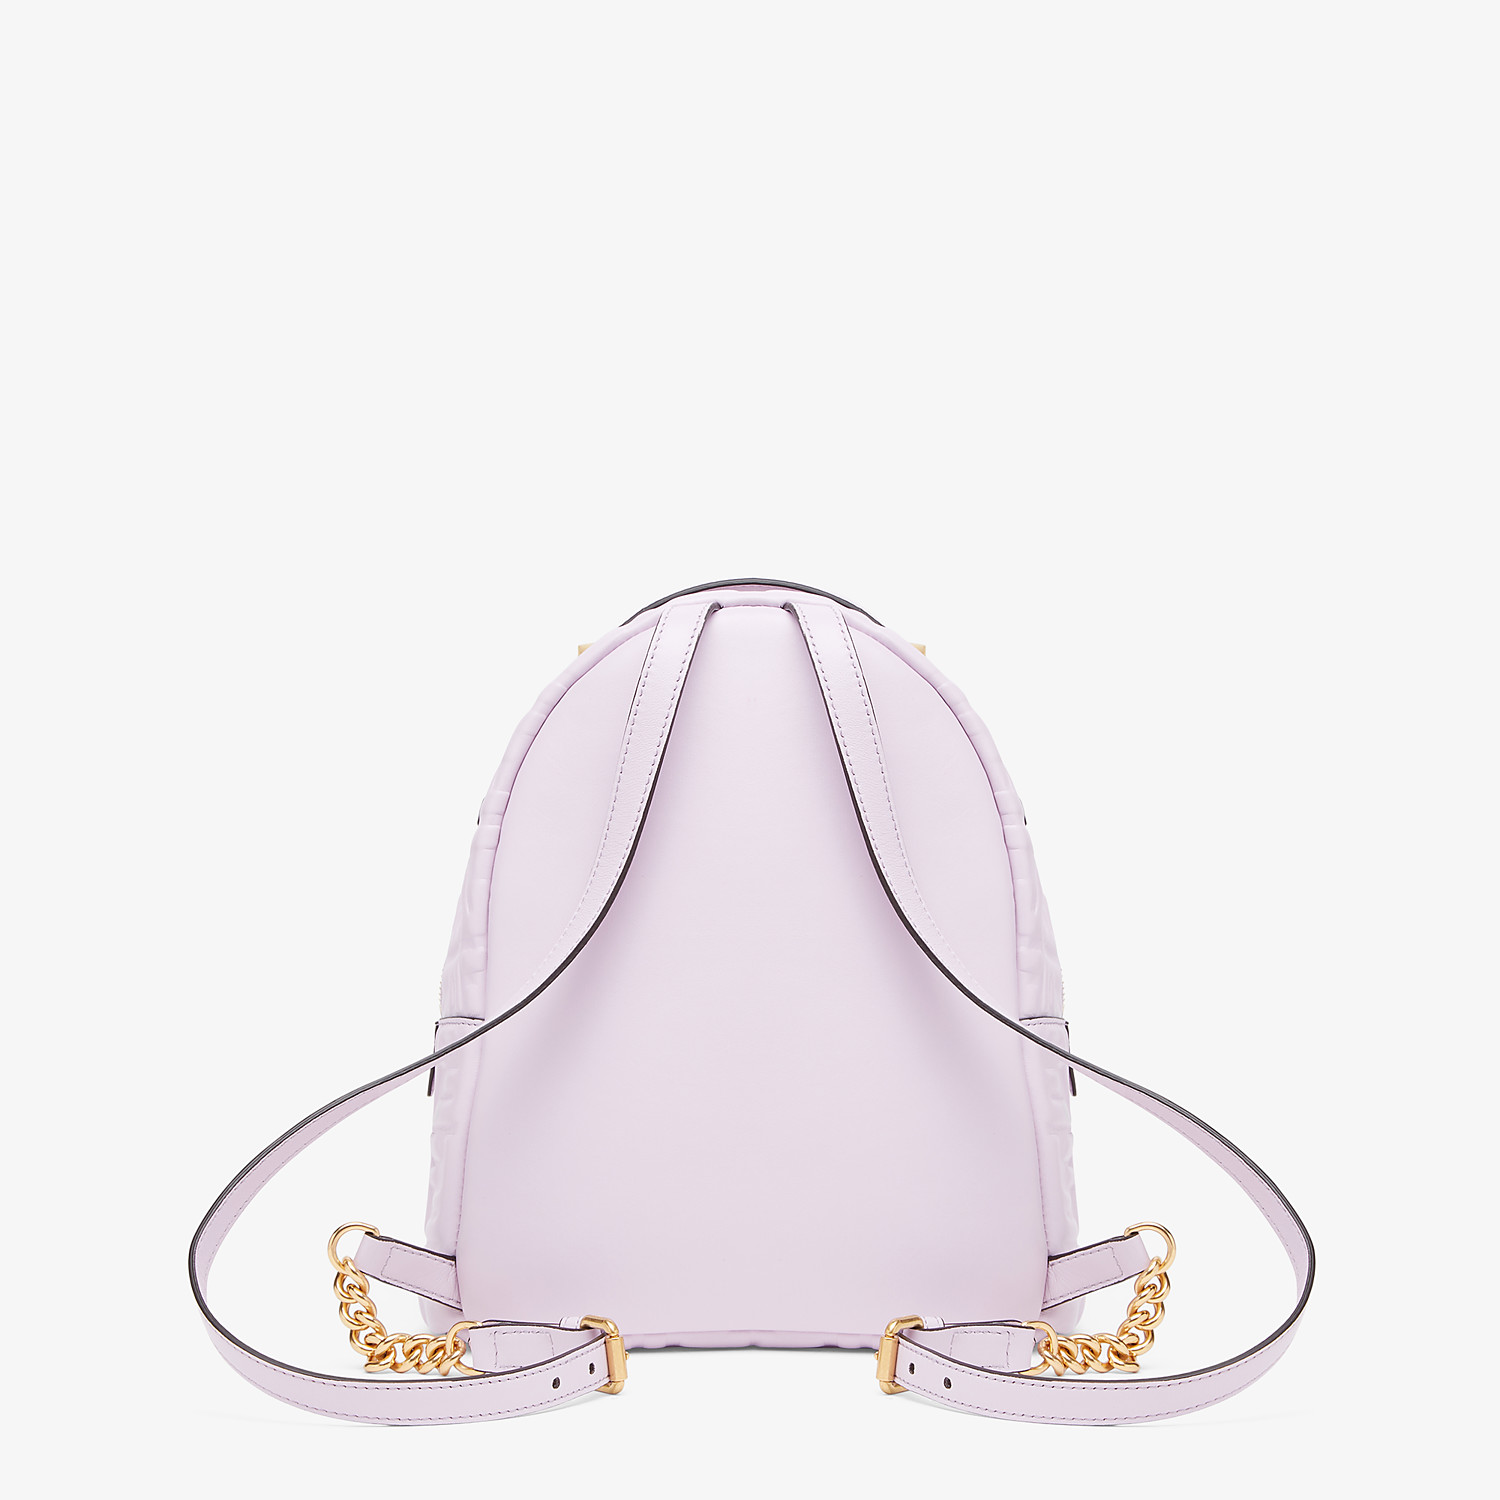 FENDI MINI BACKPACK - Lilac leather FF backpack - view 4 detail